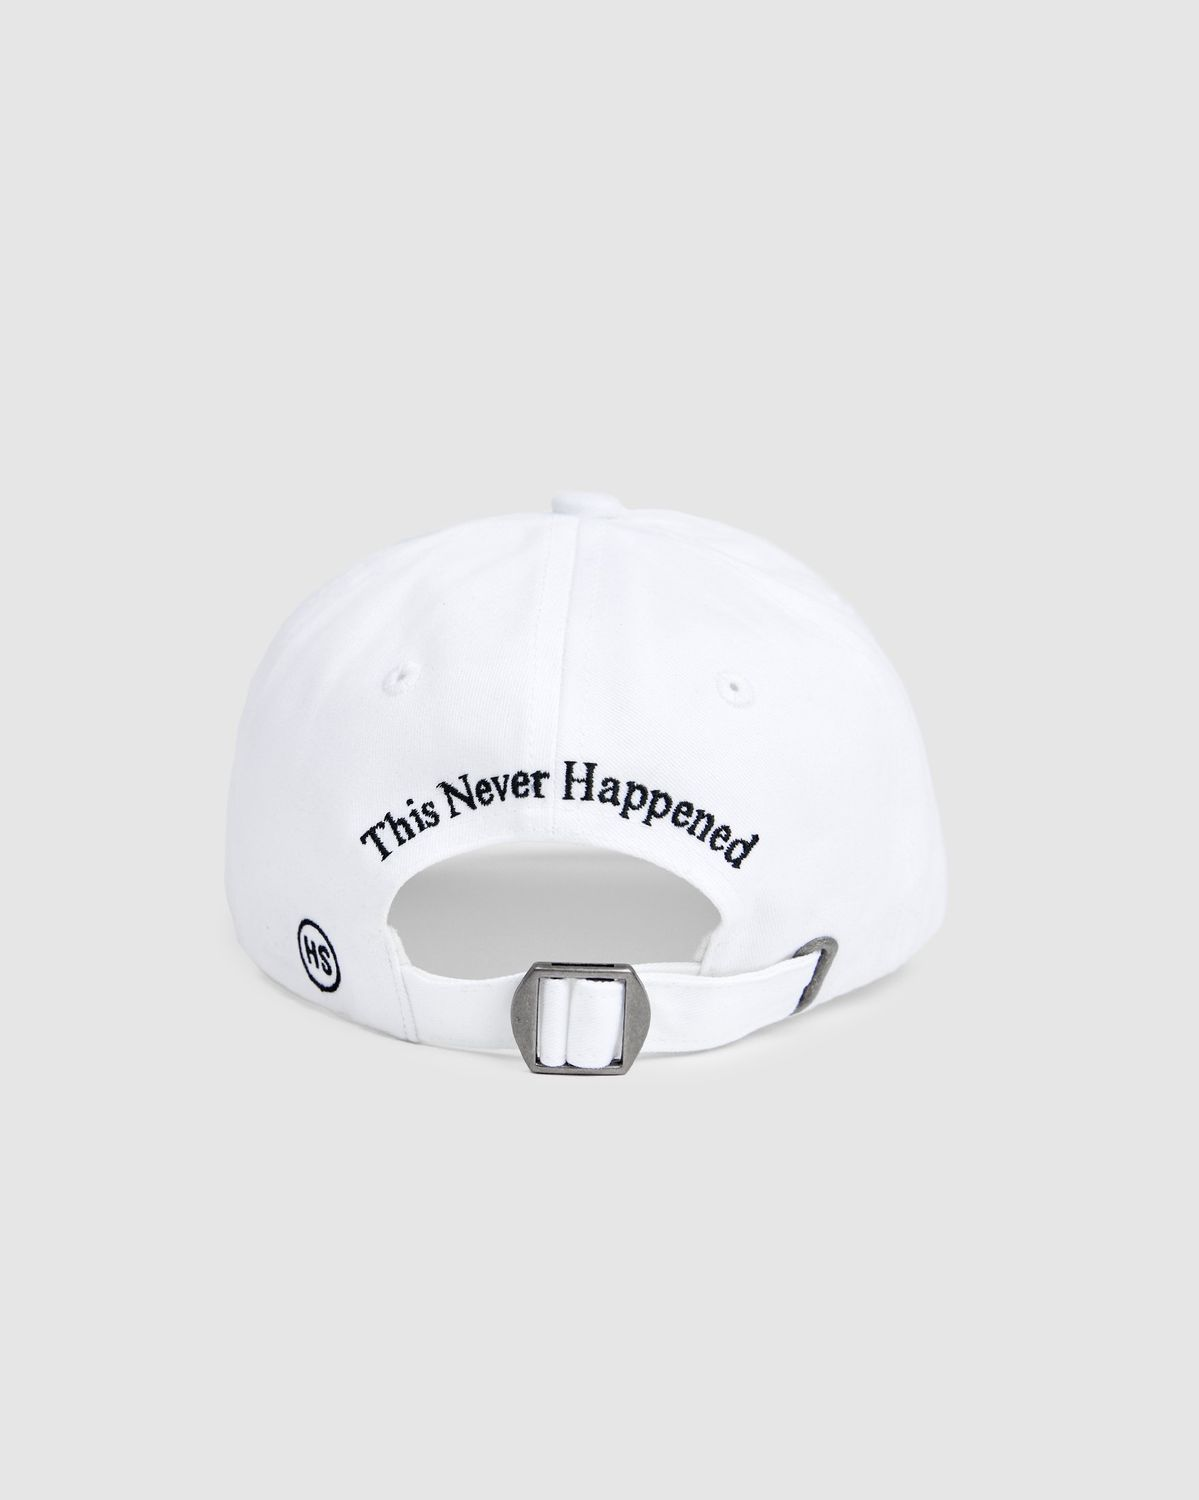 This Never Happened - 2020 Cap White - Image 2